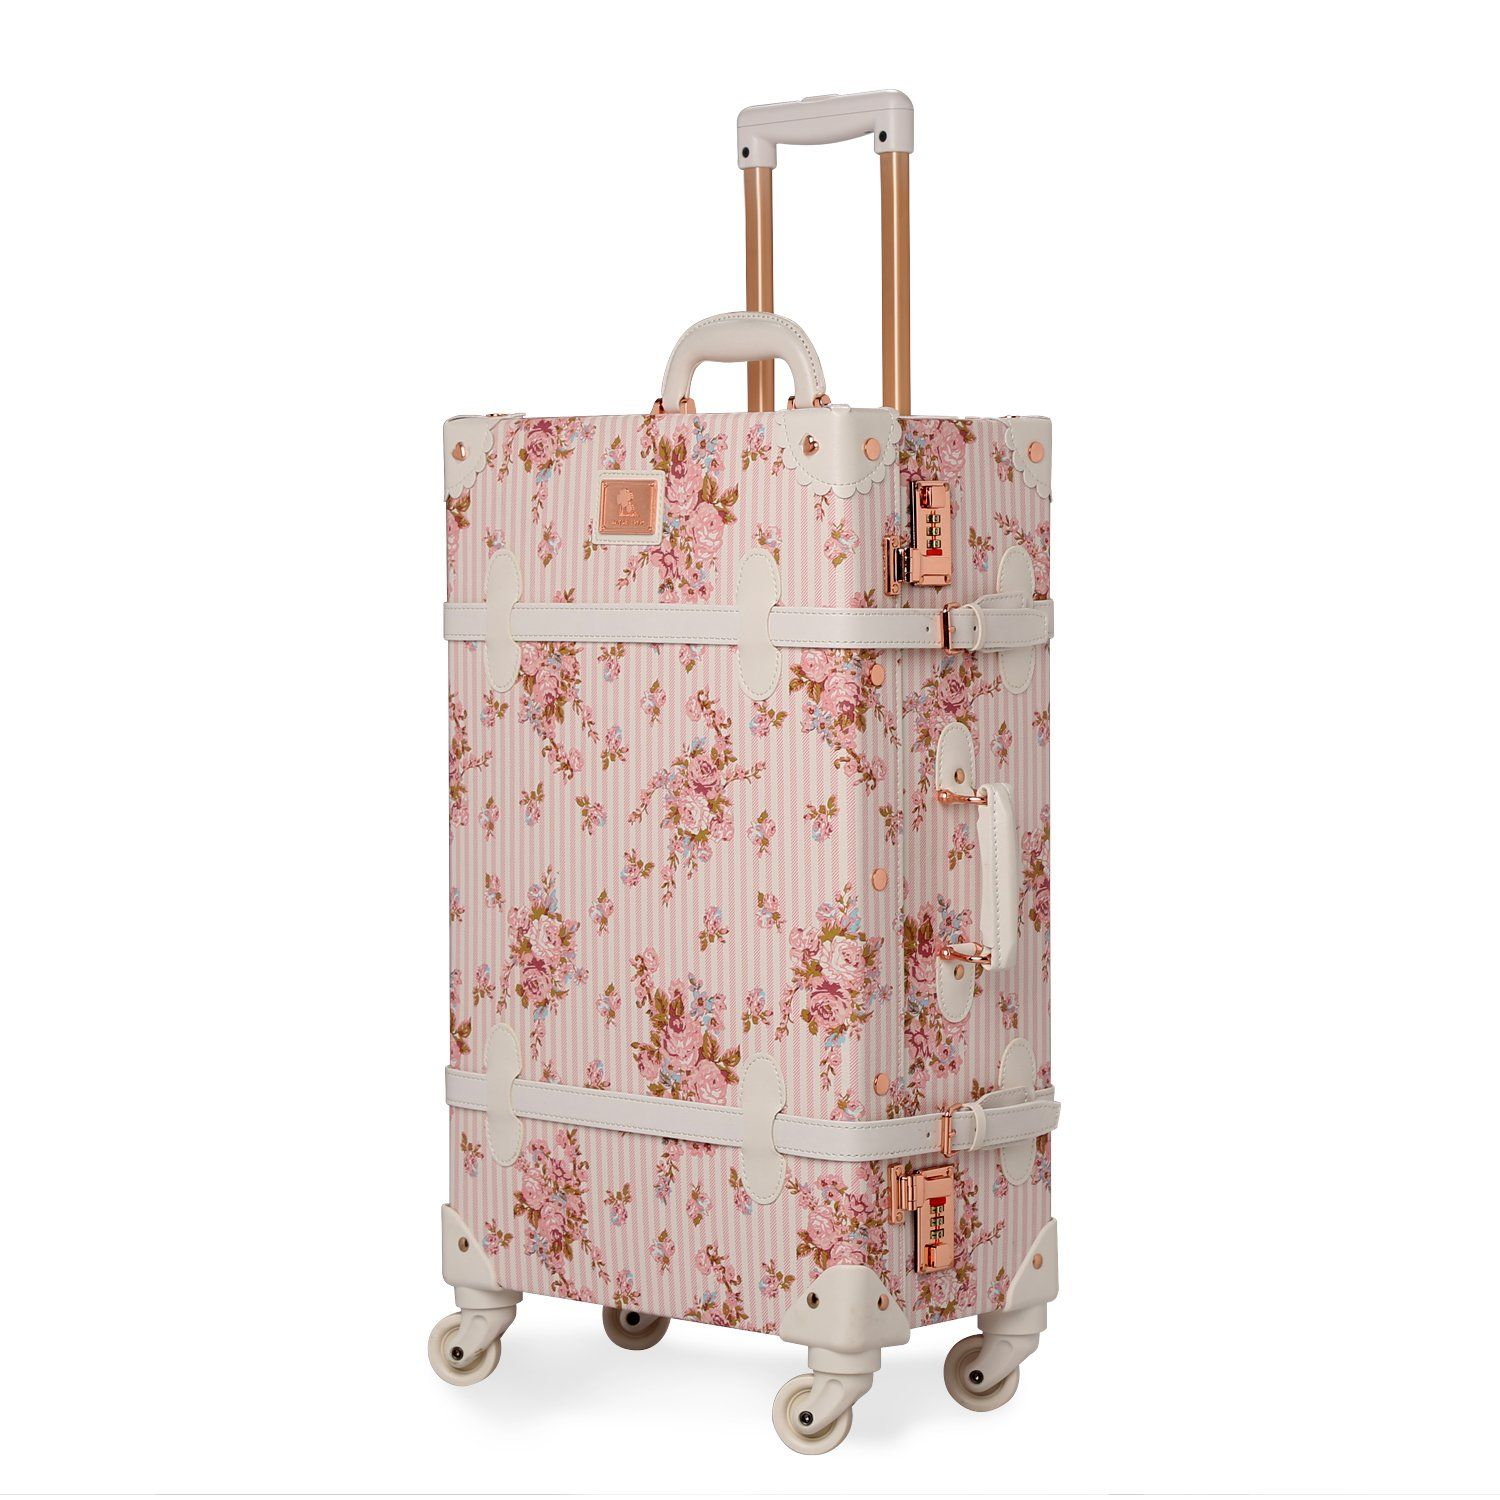 Unitravel Floral PU Leather Vintage Luggage Suitcase Rolling With Spinner Wheels Apply To 20